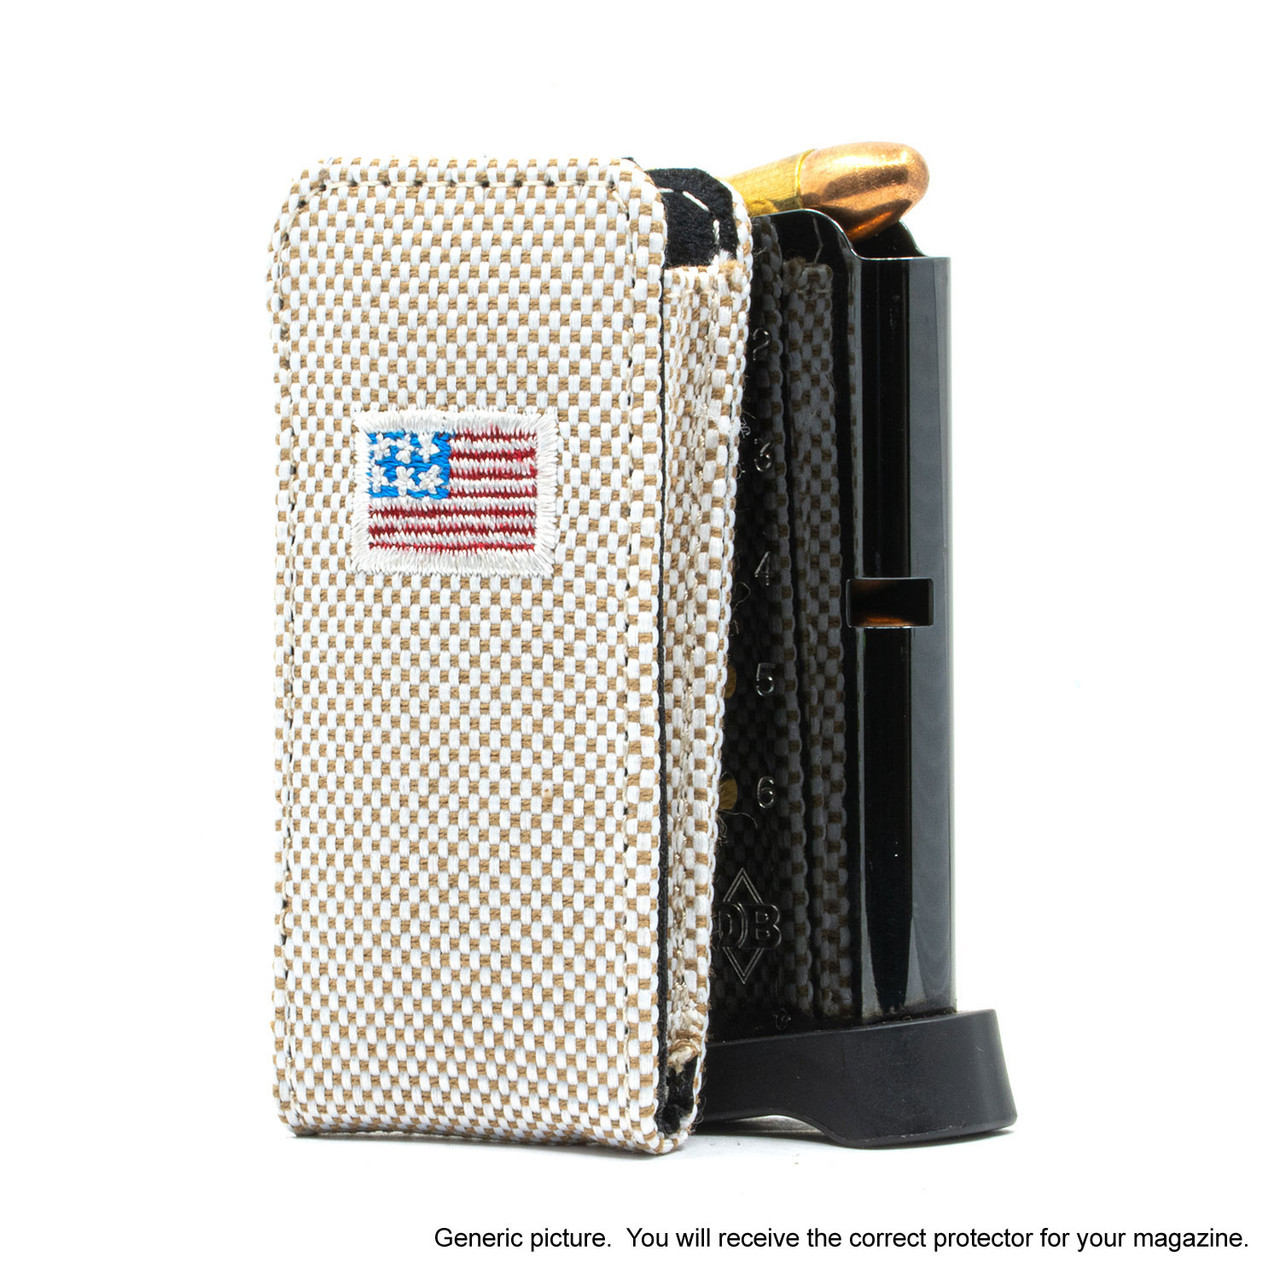 CZ 75D Compact Tan Flag Magazine Pocket Protector